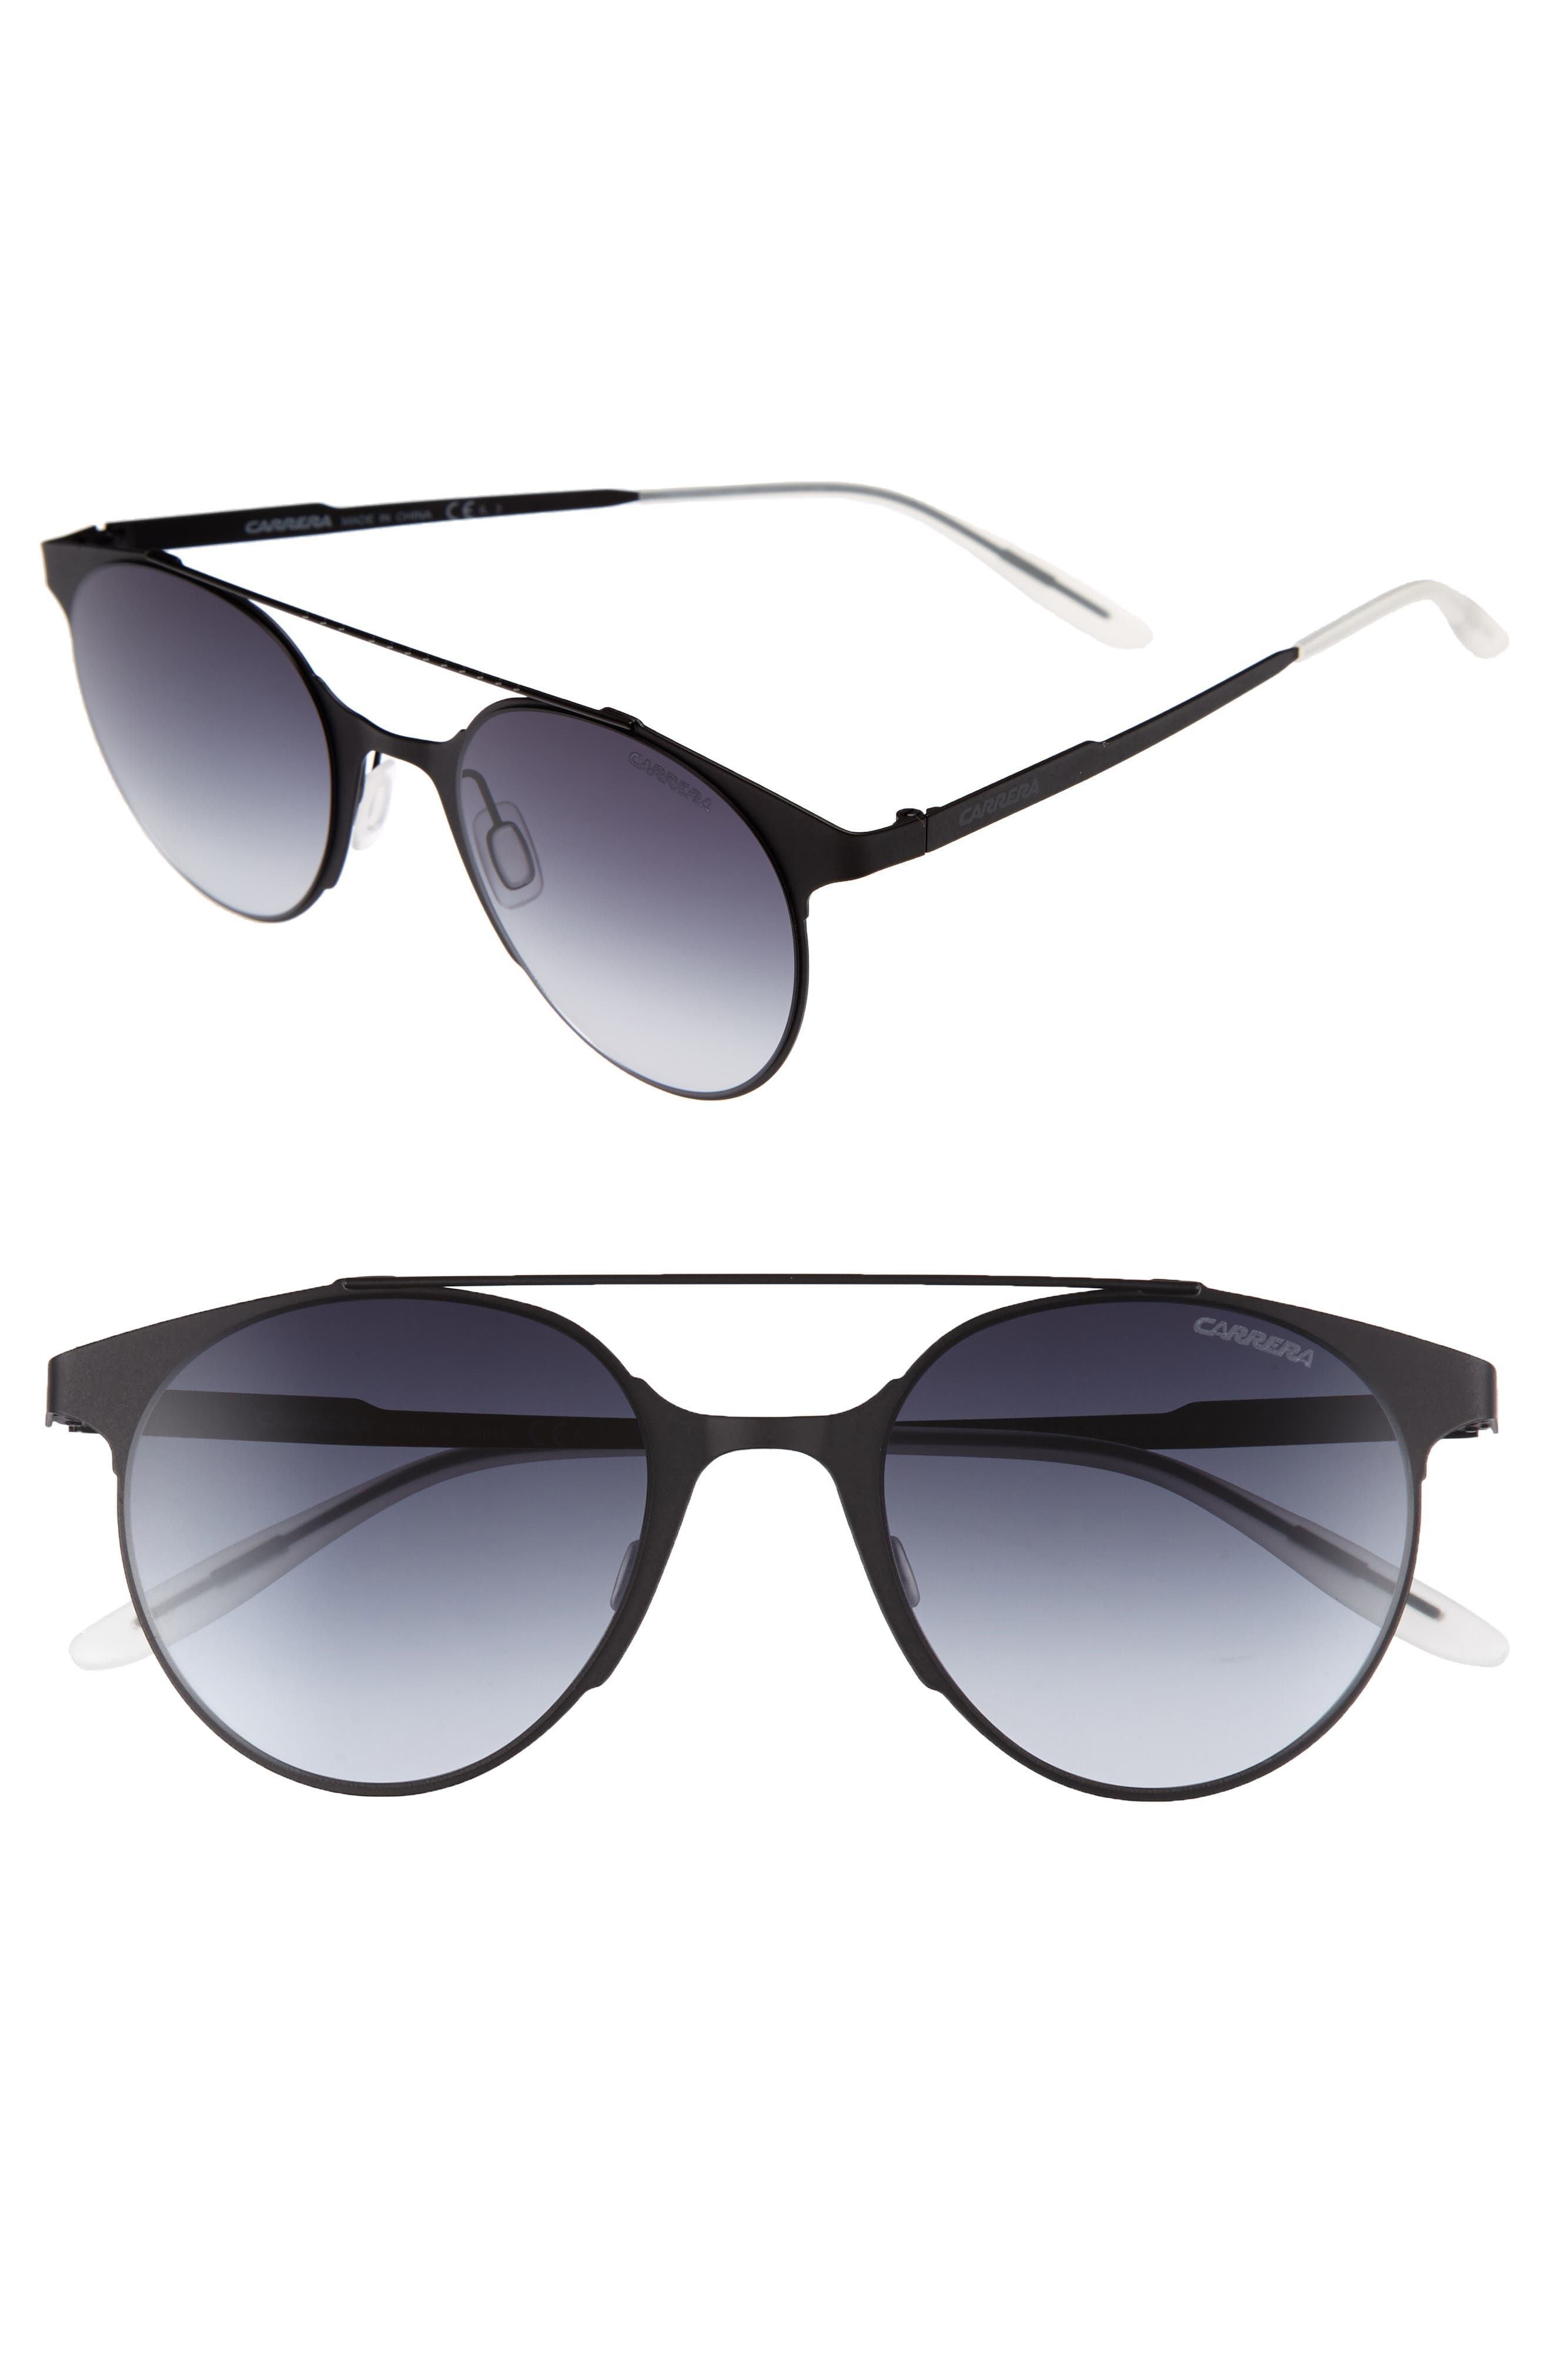 50mm Gradient Round Sunglasses,                         Main,                         color, Matte Black